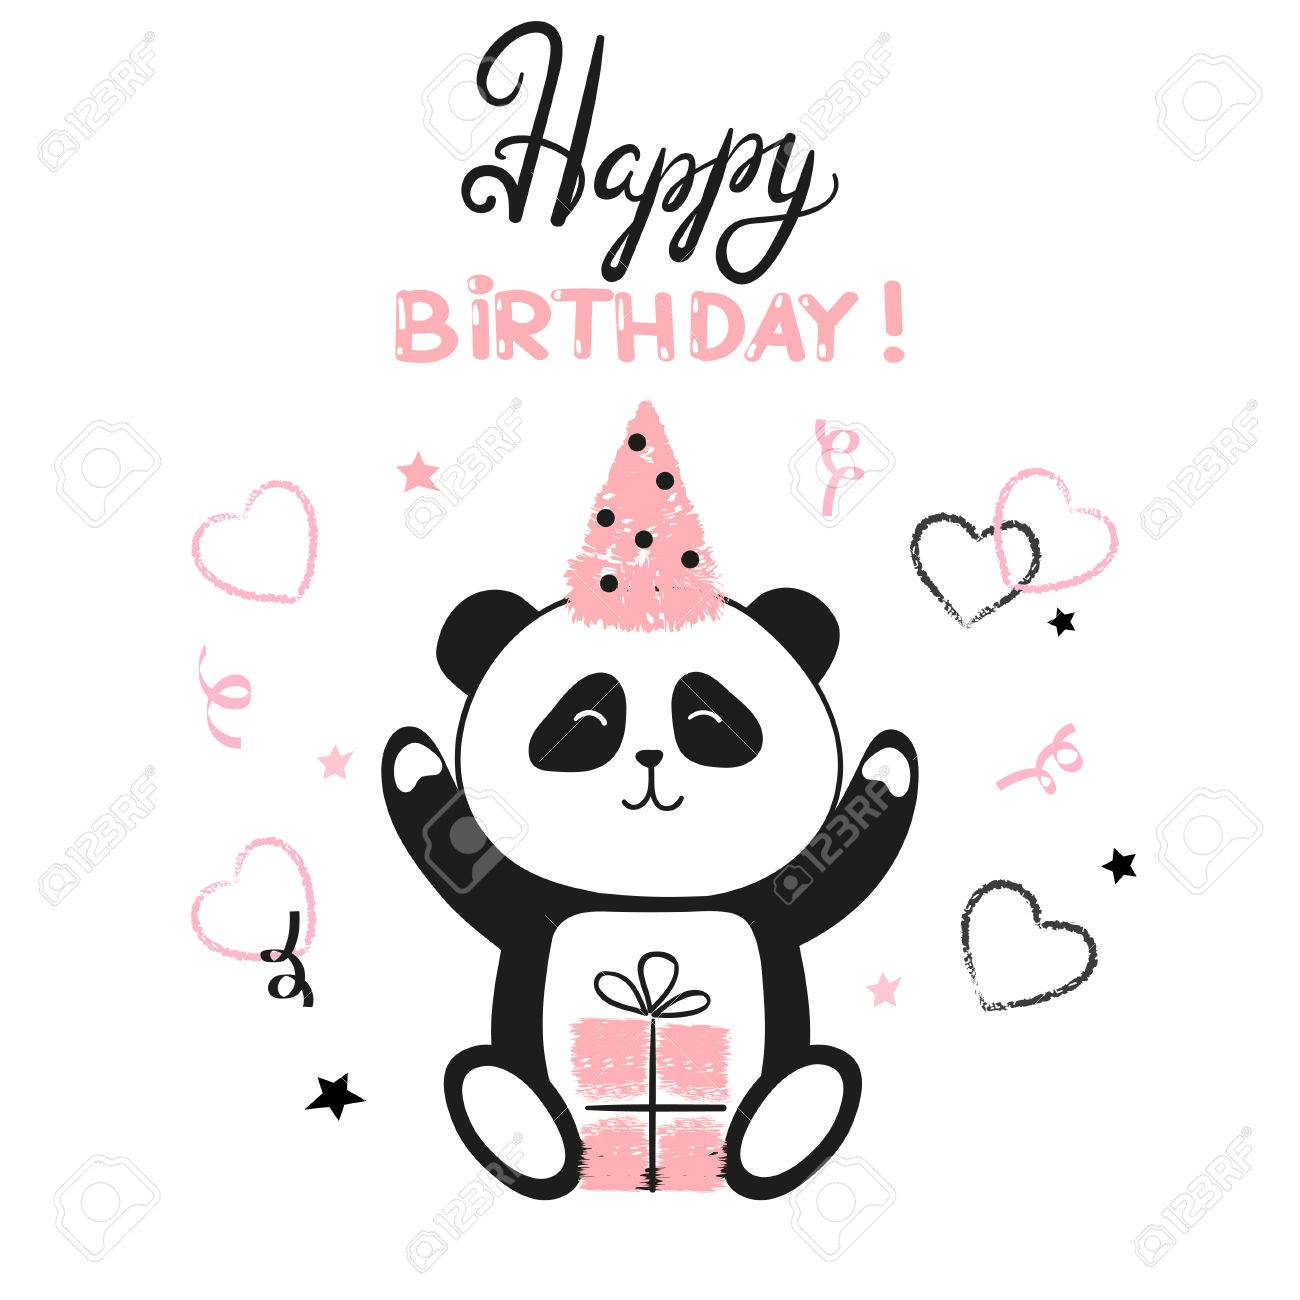 happy birthday panda clipart ; 78624403-happy-birthday-card-with-cute-panda-bear-vector-illustration-